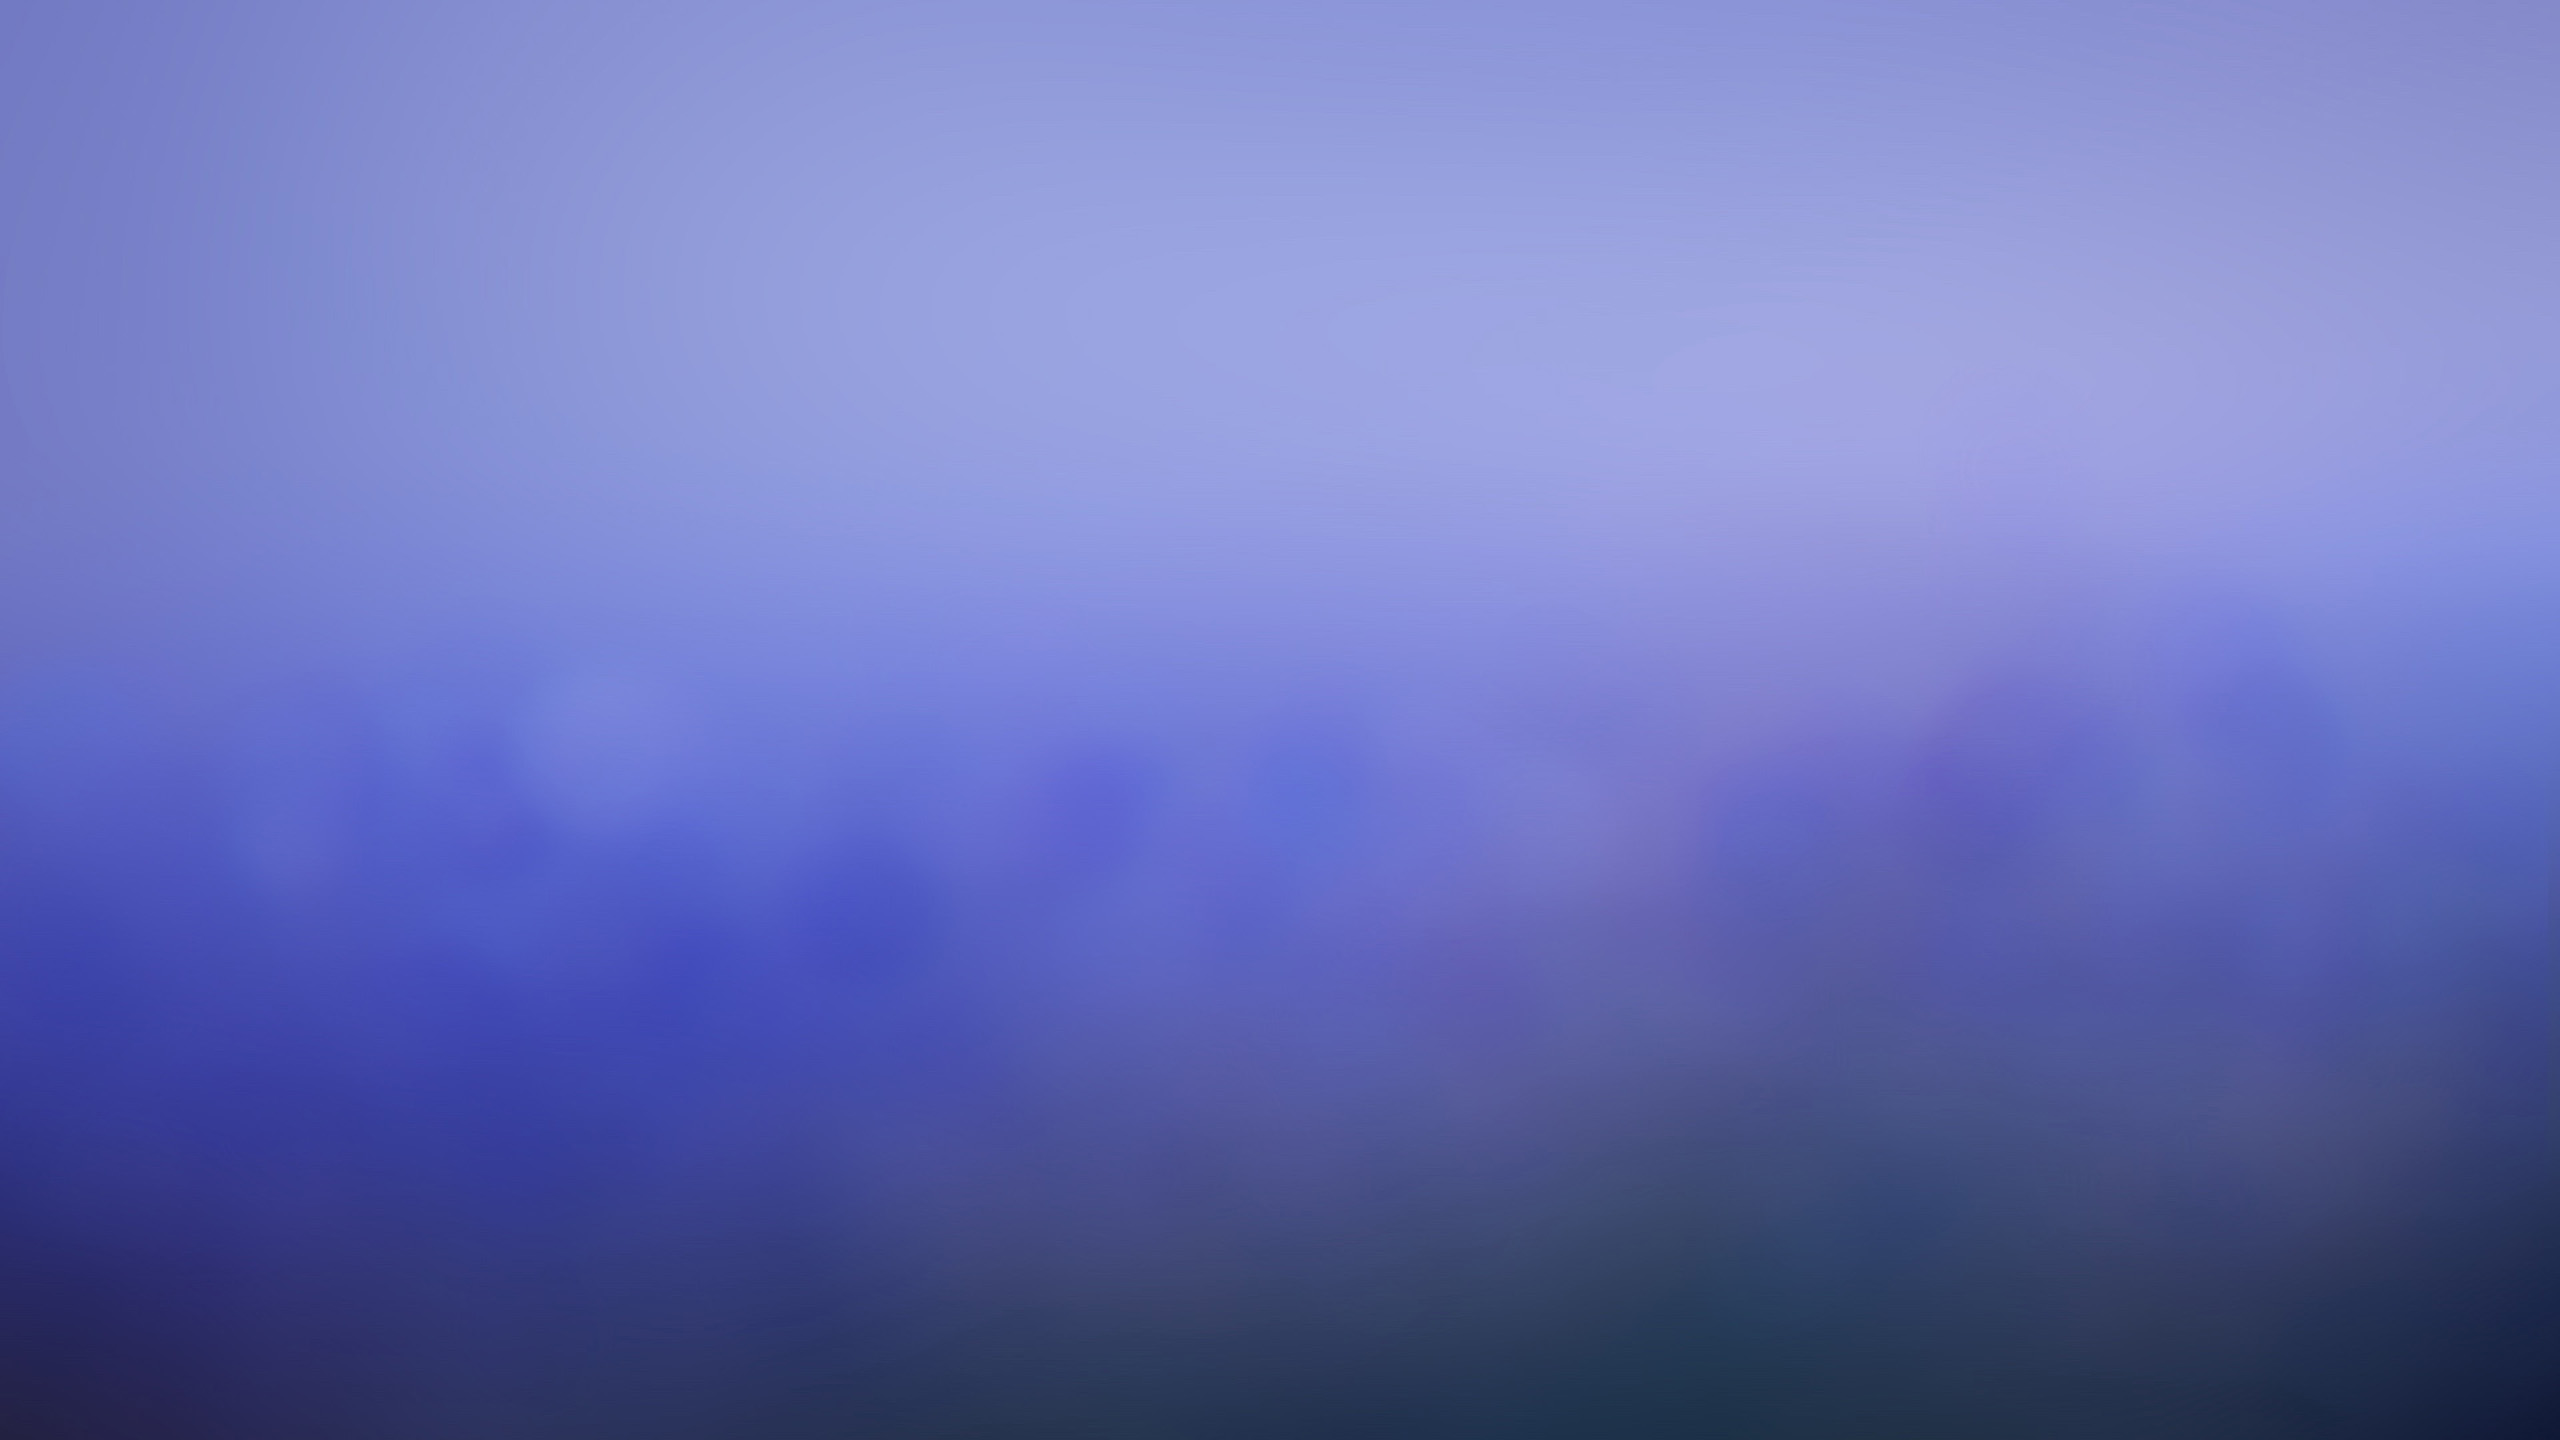 Hazy Wallpaper 6797662 2560x1440